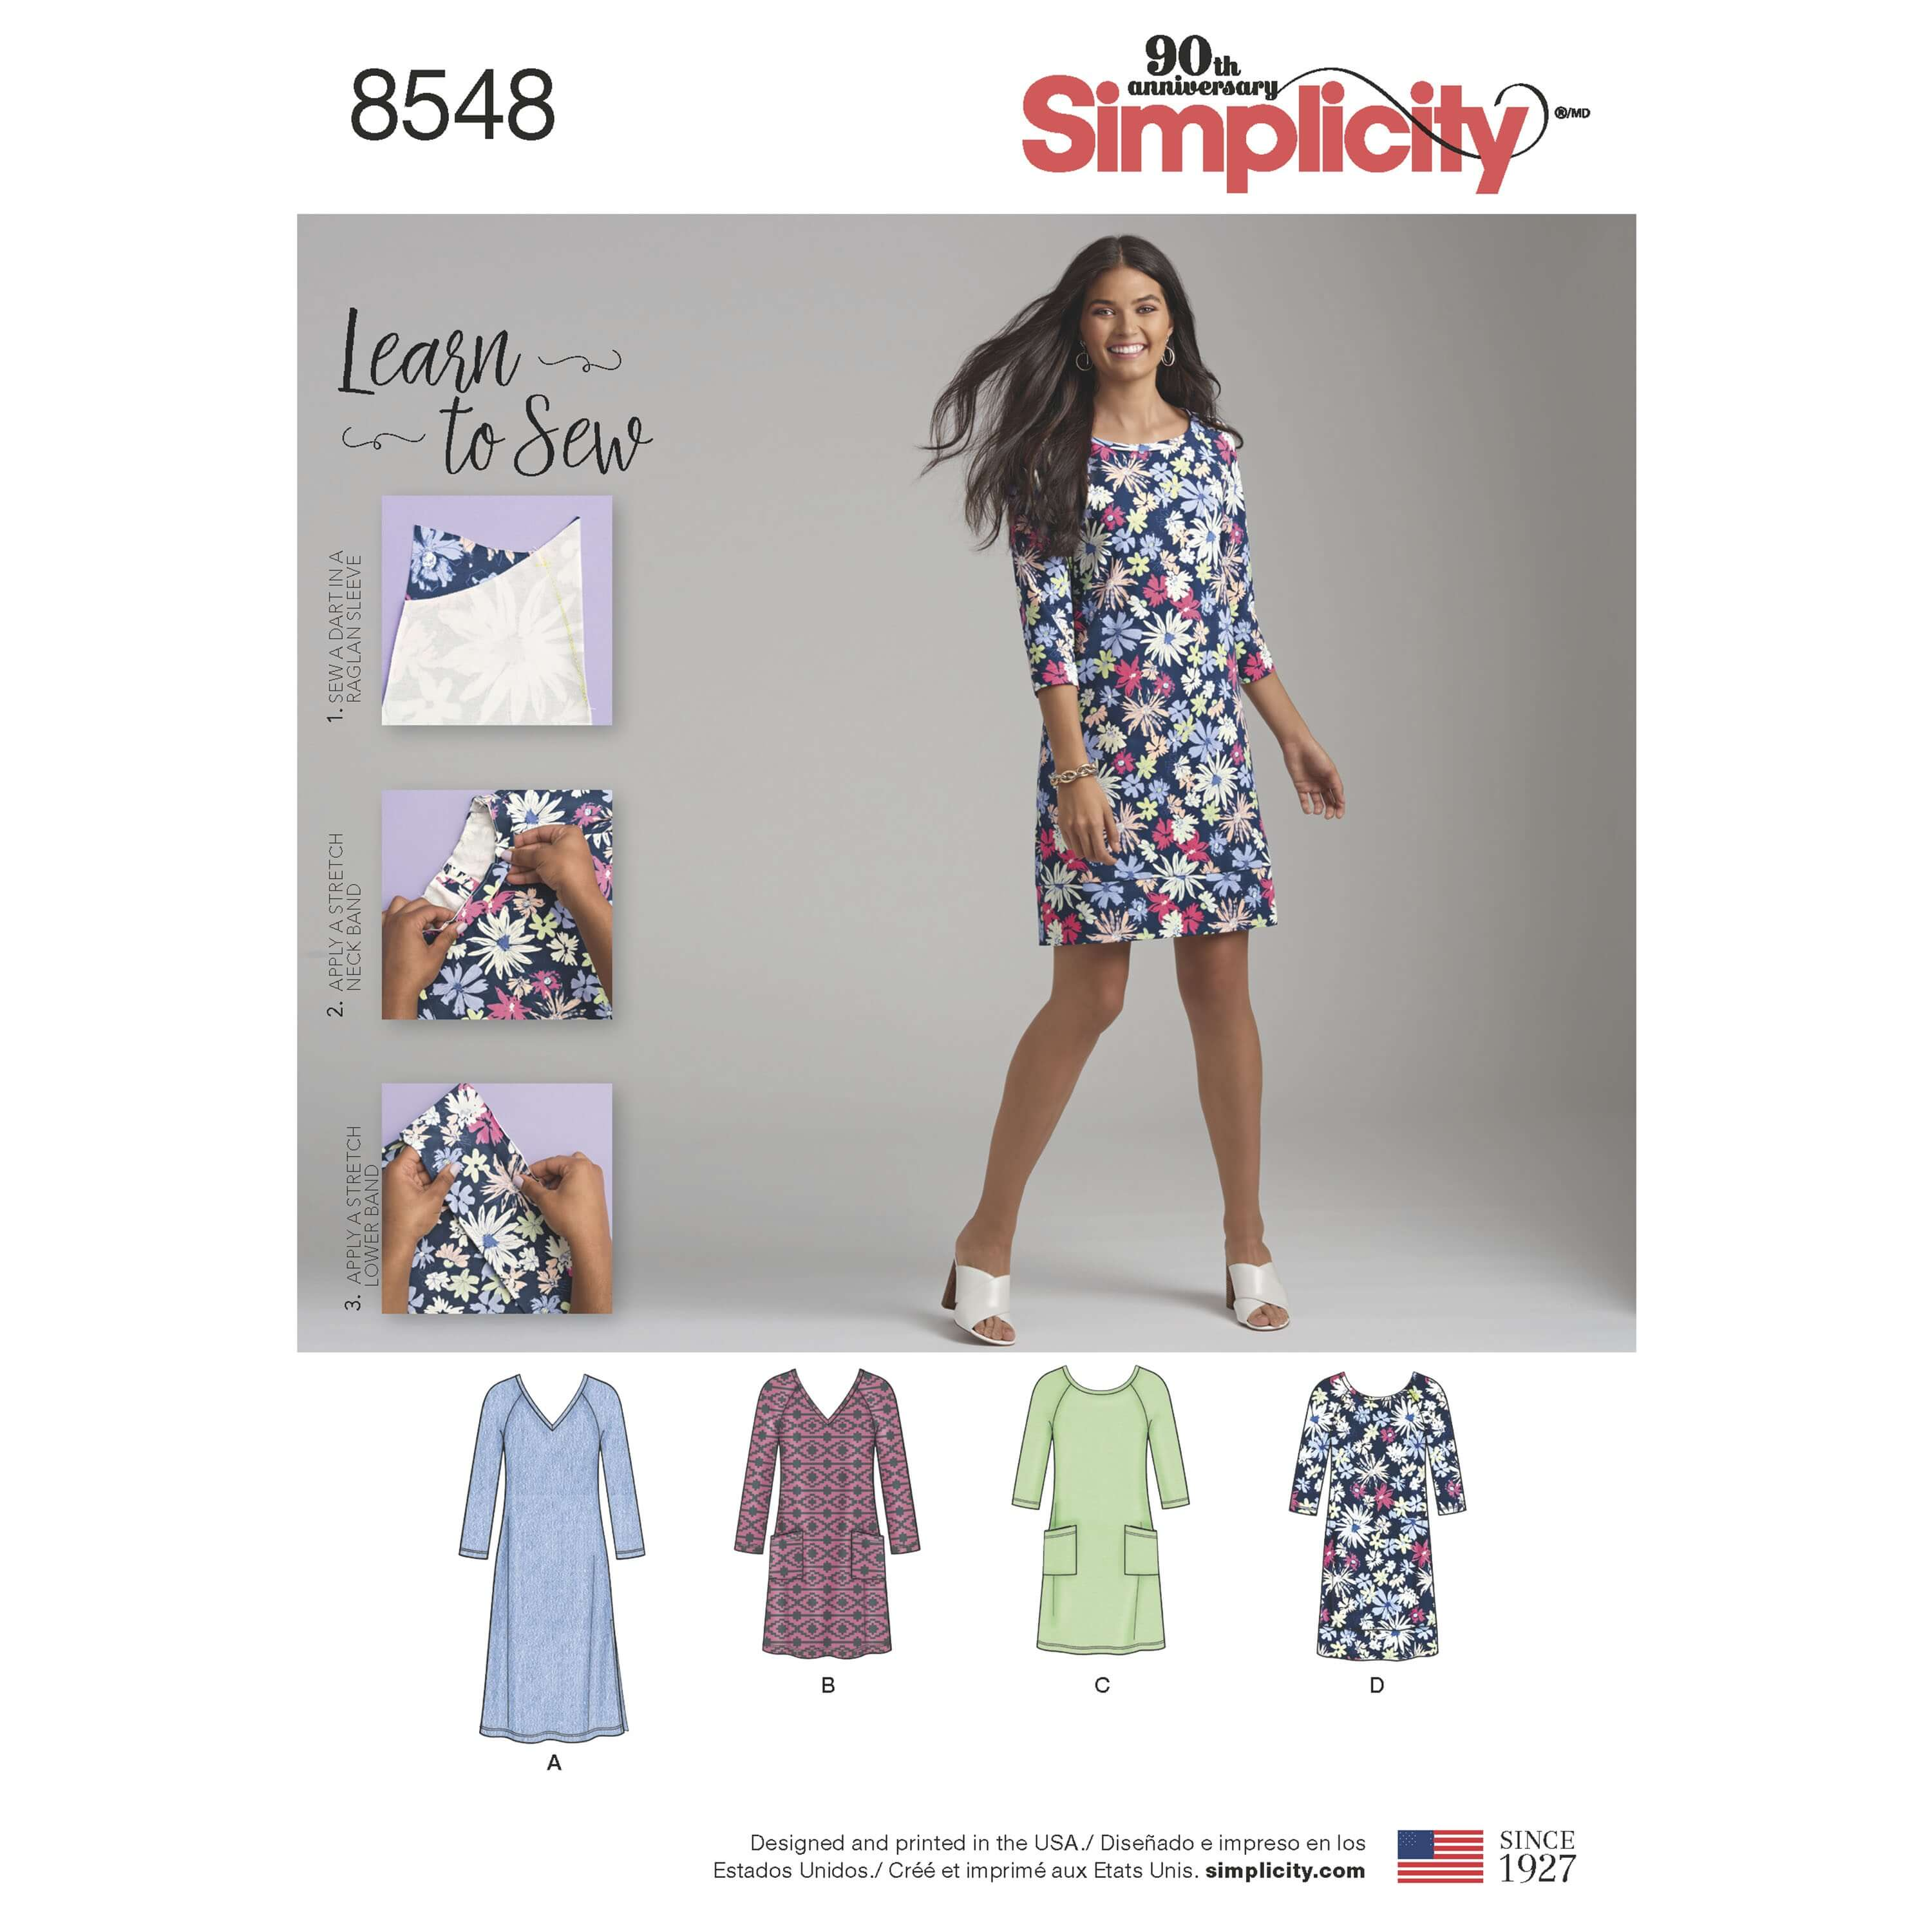 Simplicity Sewing Pattern 8548 Misses Learn to Sew Knit Shift Dress